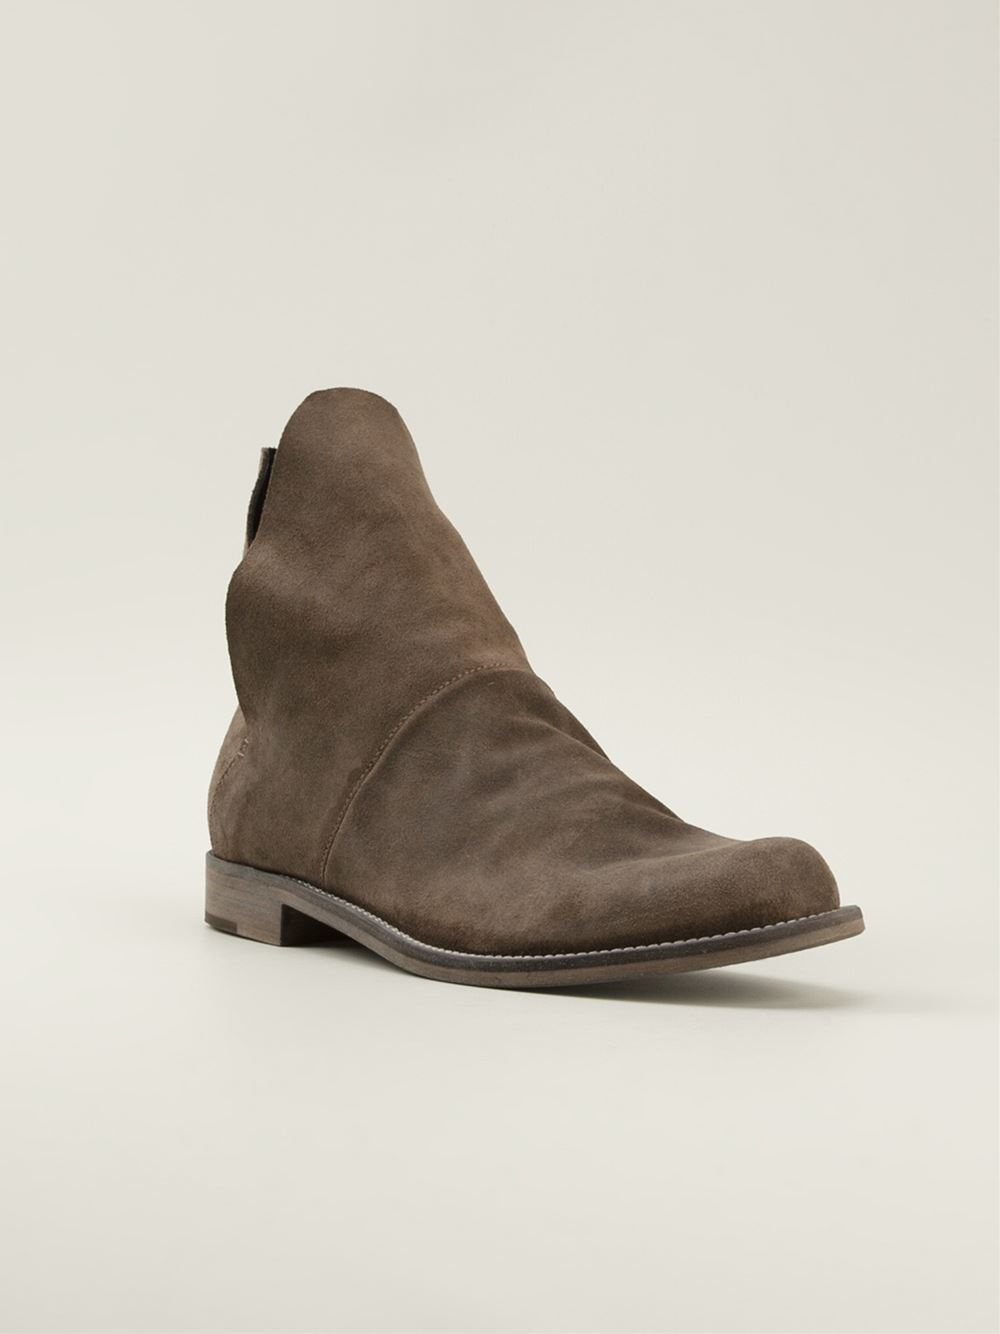 tuttle women Buy second-hand ld tuttle shoes for women on vestiaire collective buy, sell, empty your wardrobe on our website.